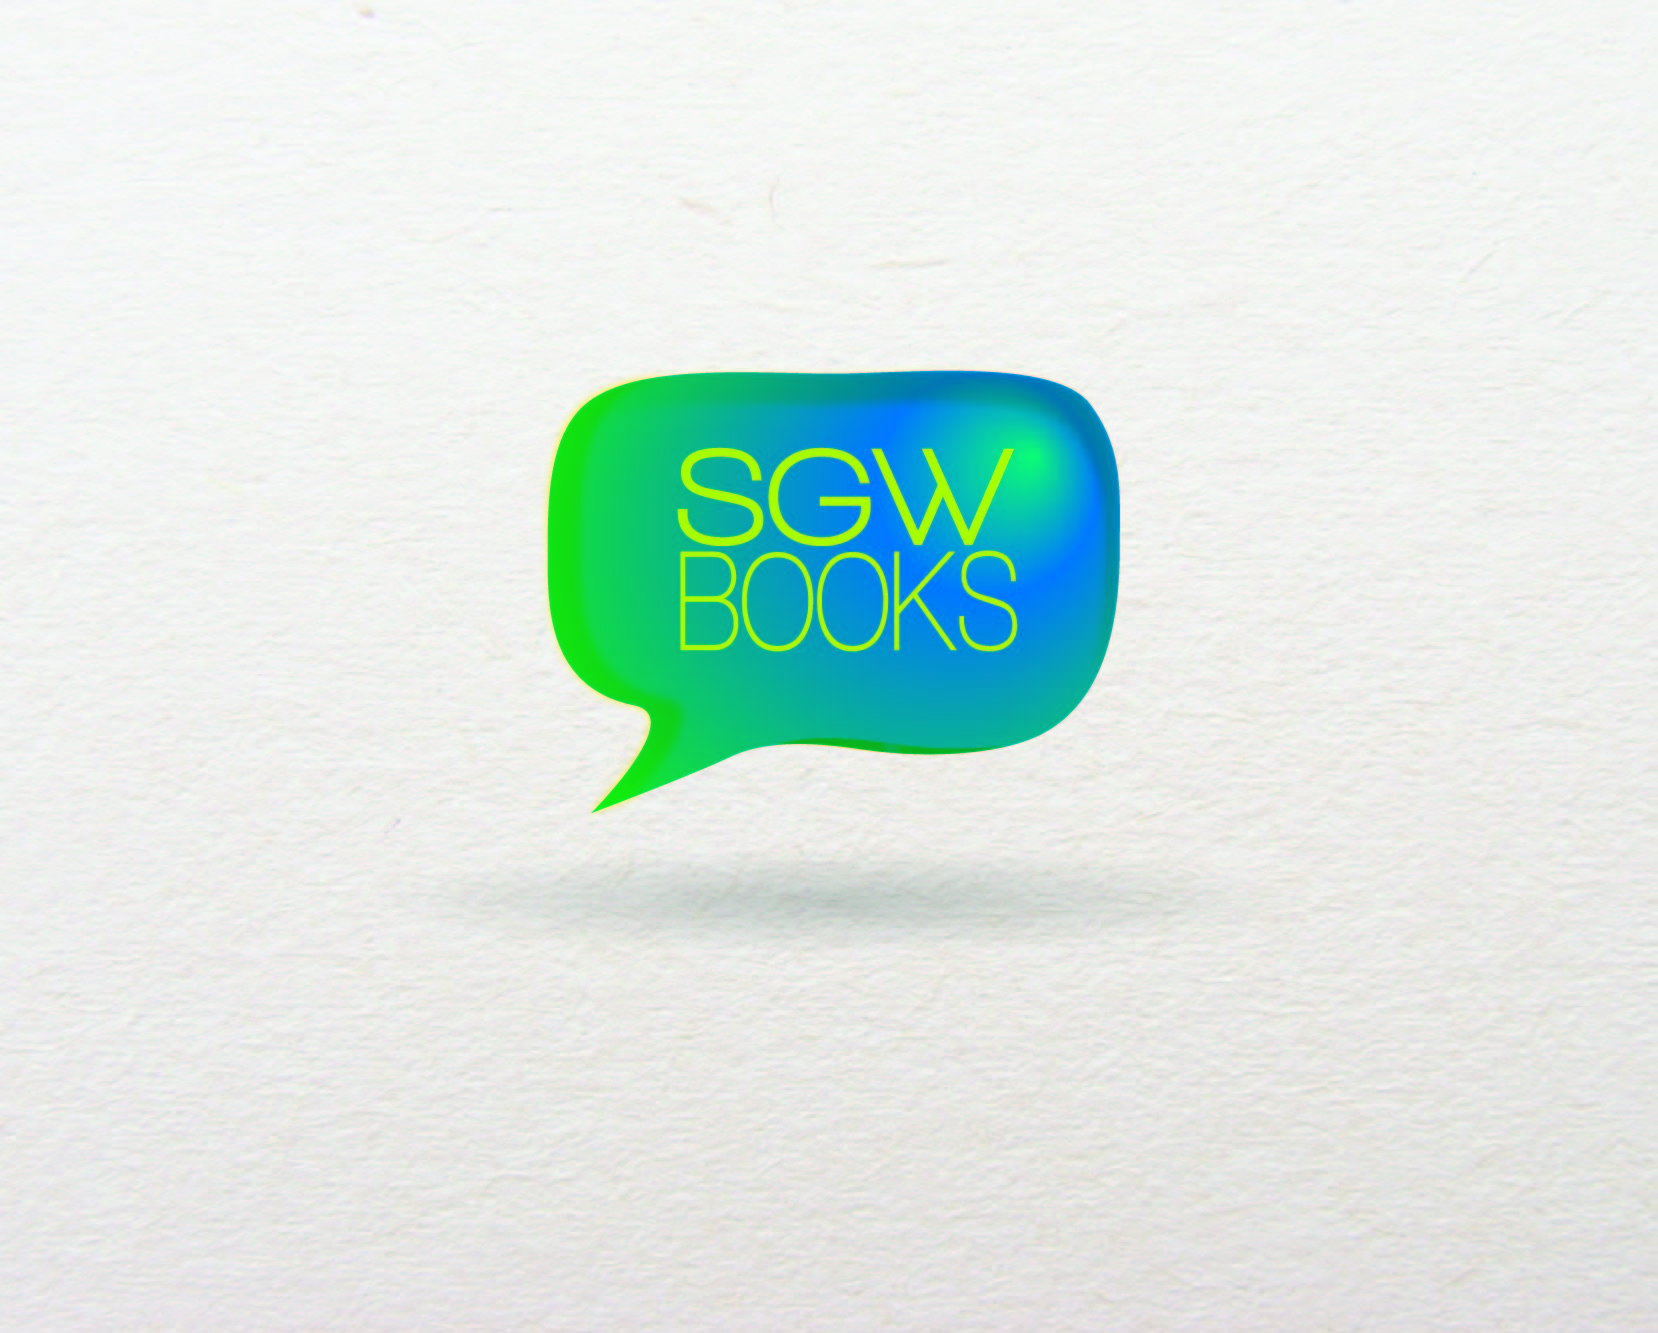 Logo Design by iwyn - Entry No. 23 in the Logo Design Contest SGW Books Logo Design.